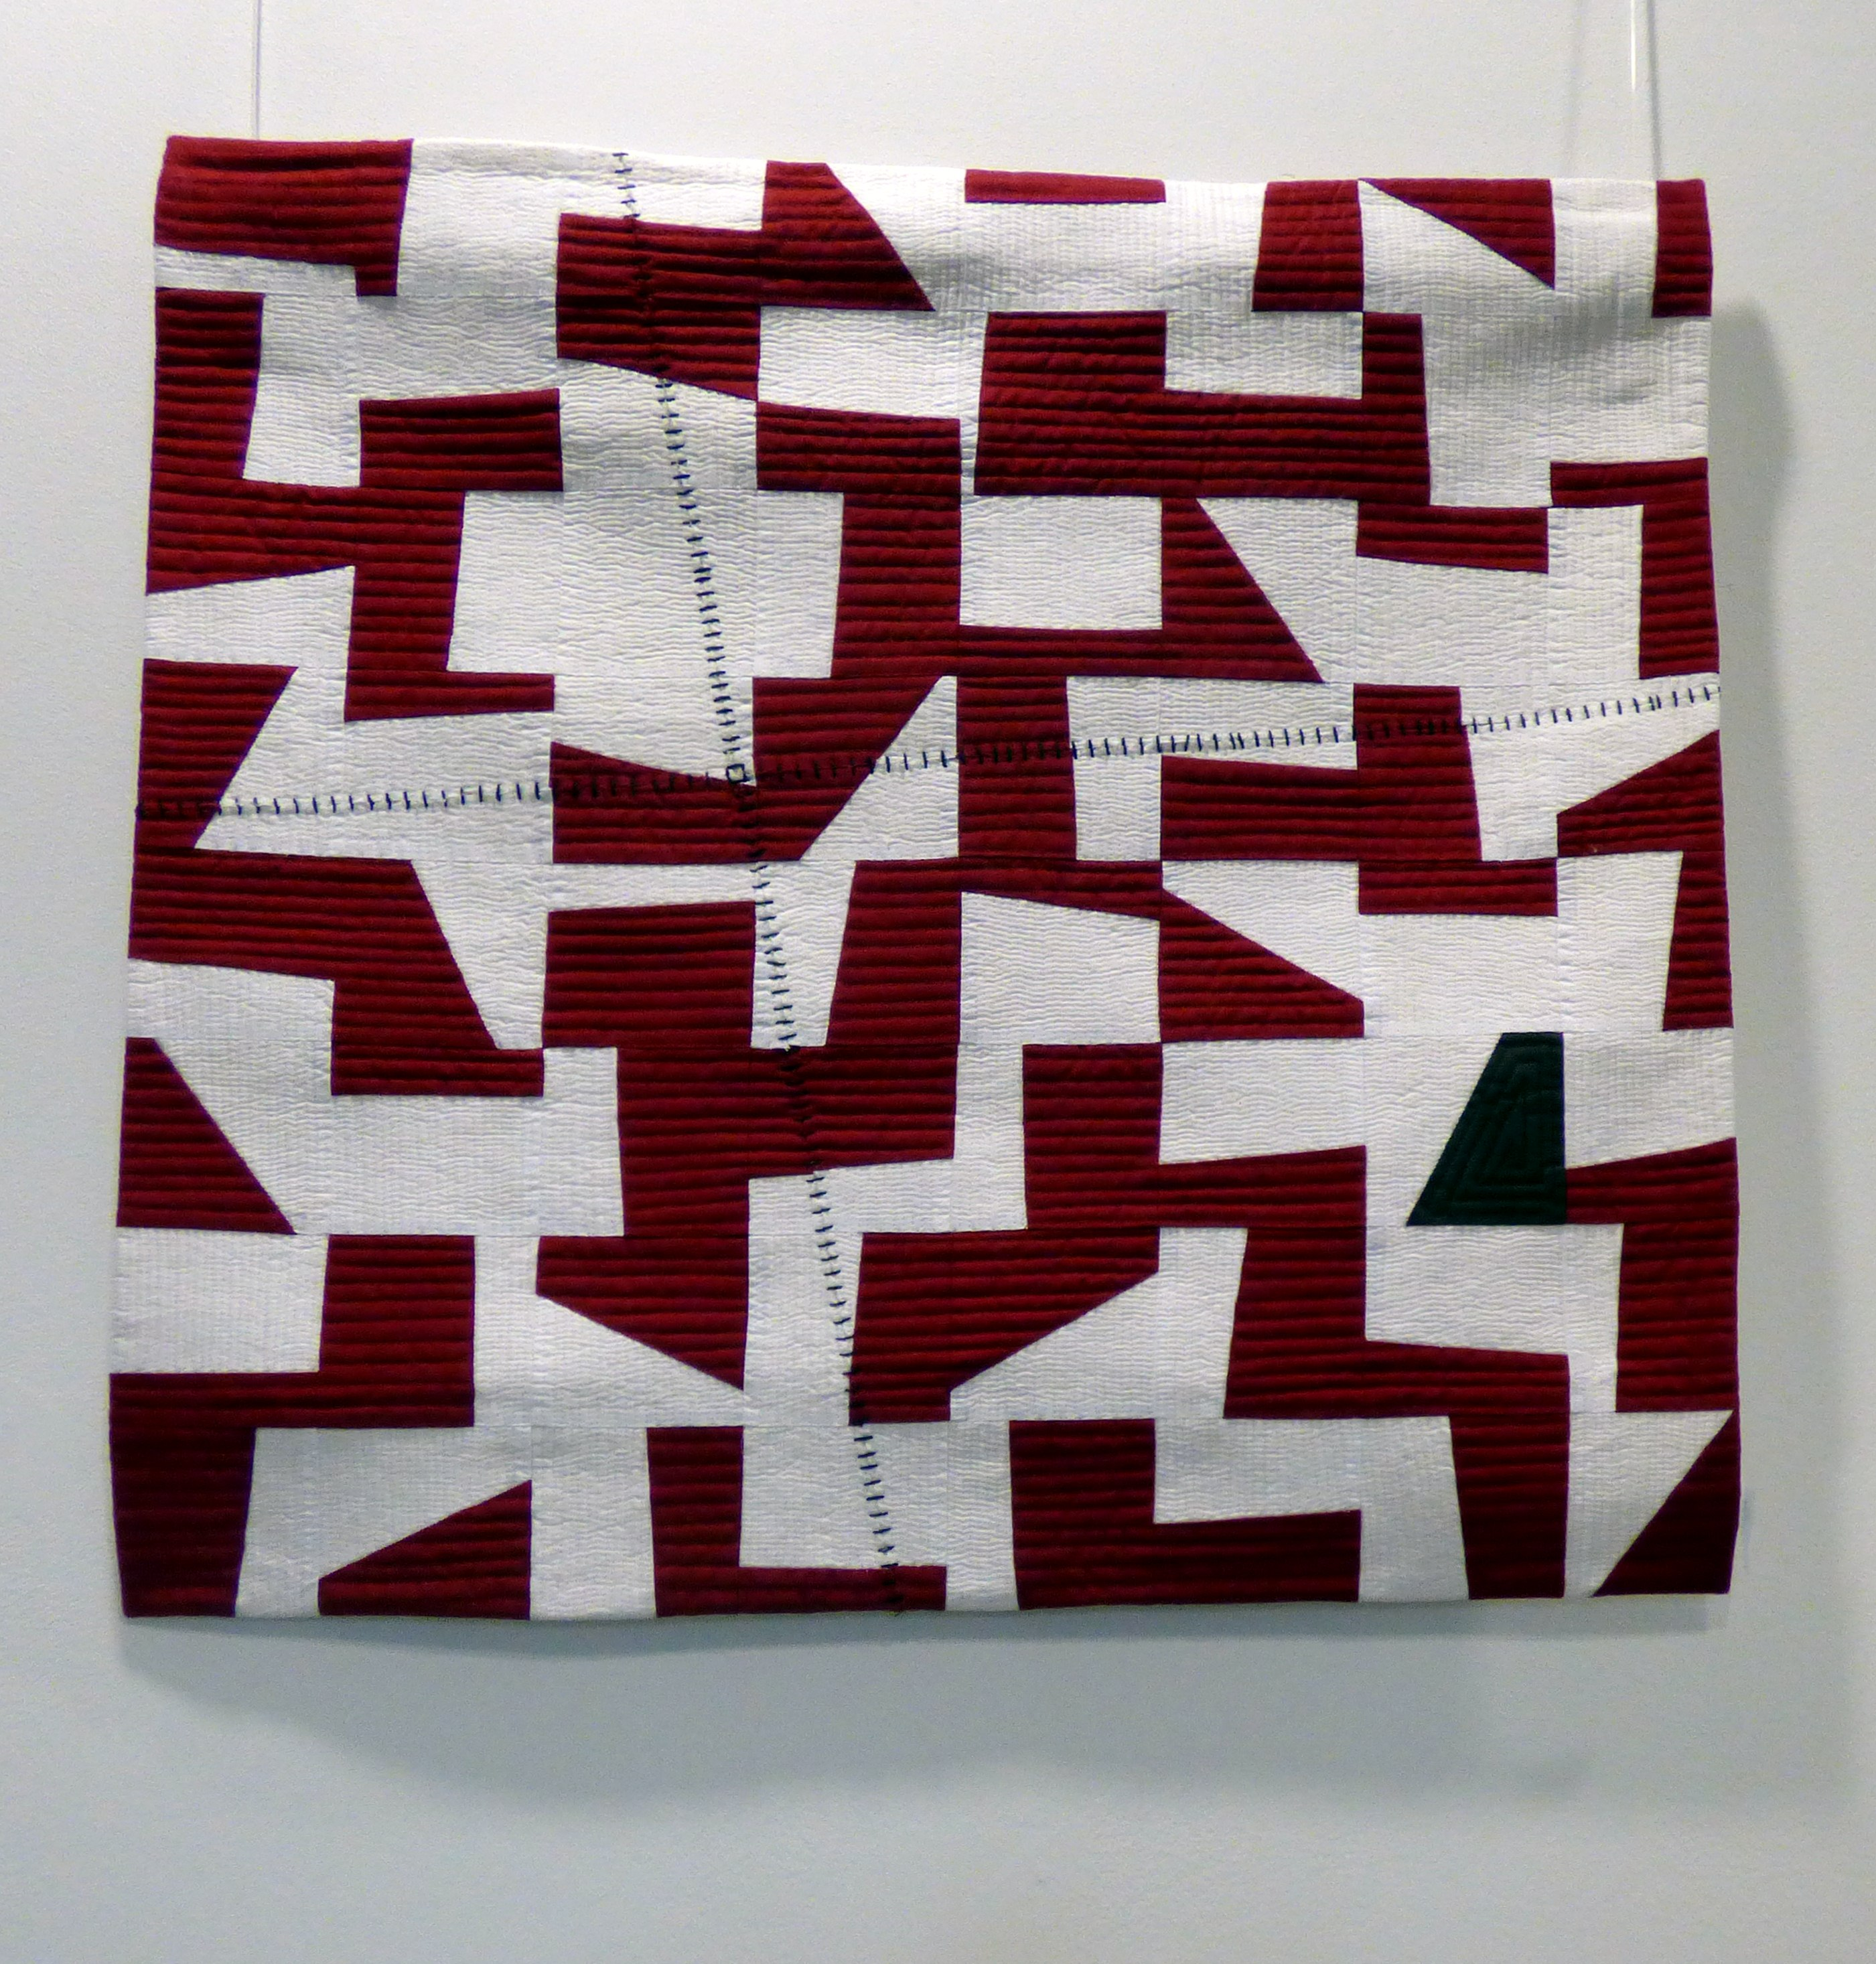 PERSONAL LANDSCAPES- FRAGMENTS by Linda Bilsborrow, machine pieced and quilted, Ten Plus @ the Atkinsin, 2018